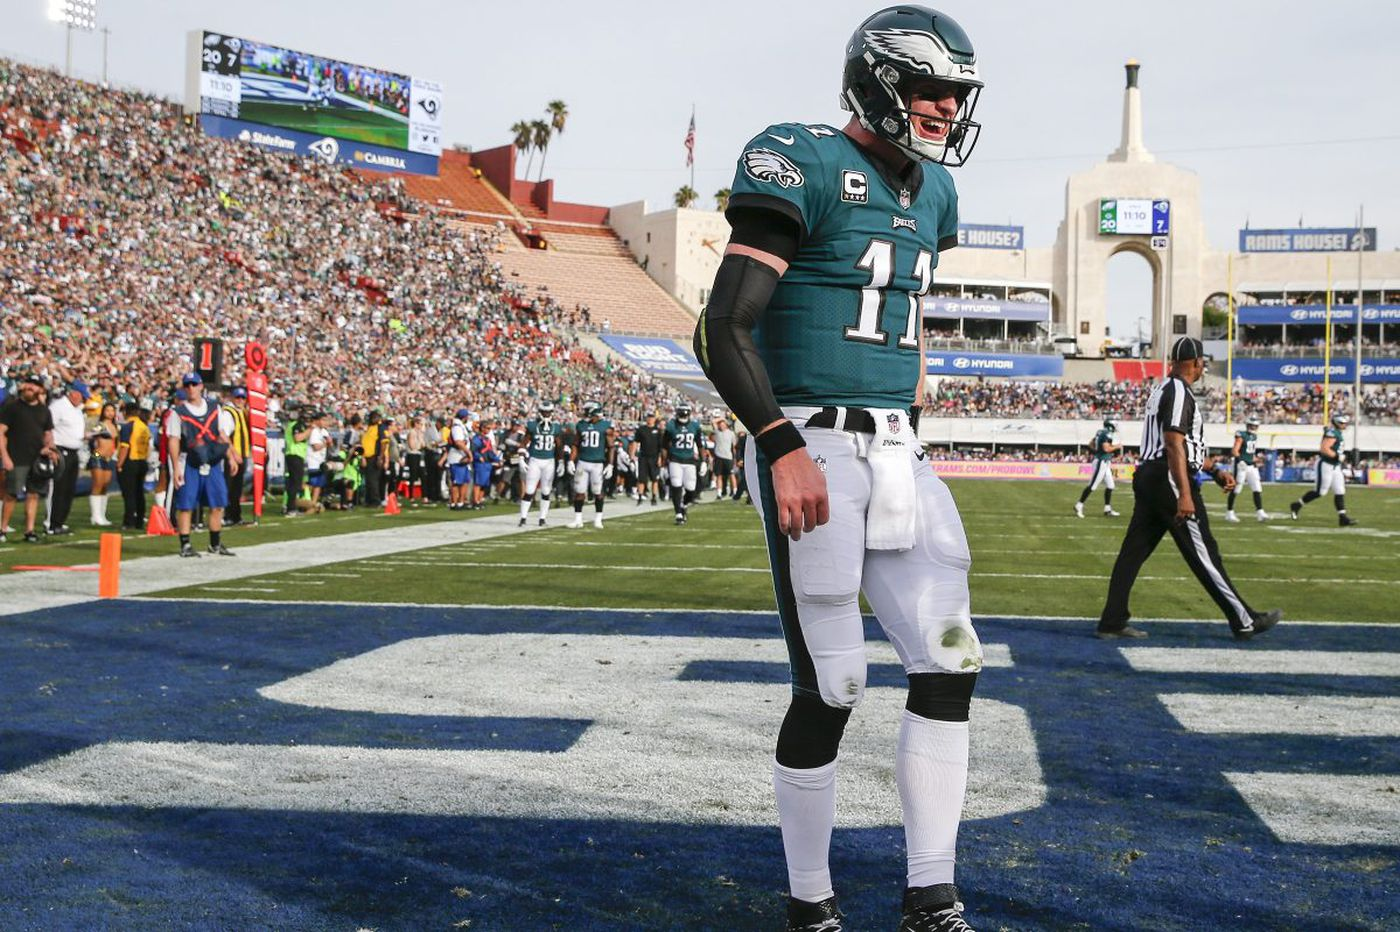 Carson Wentz's absence could reveal the warts that his presence disguised | David Murphy